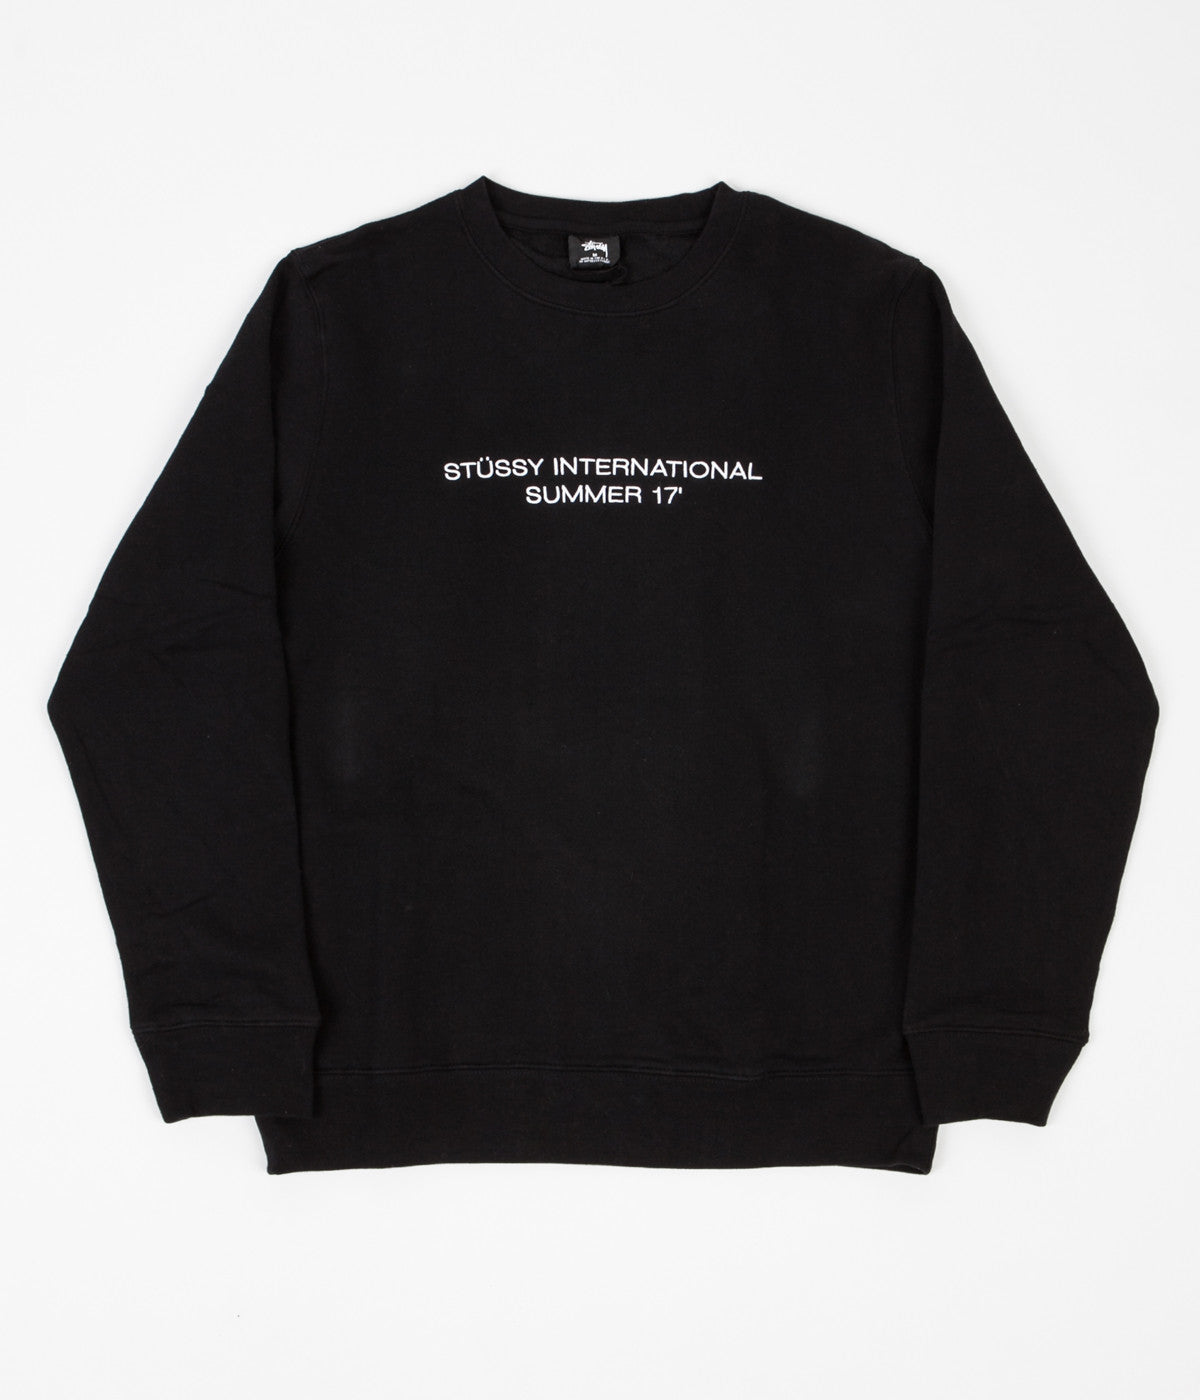 Stussy International Summer Applique Crewneck Sweatshirt - Black